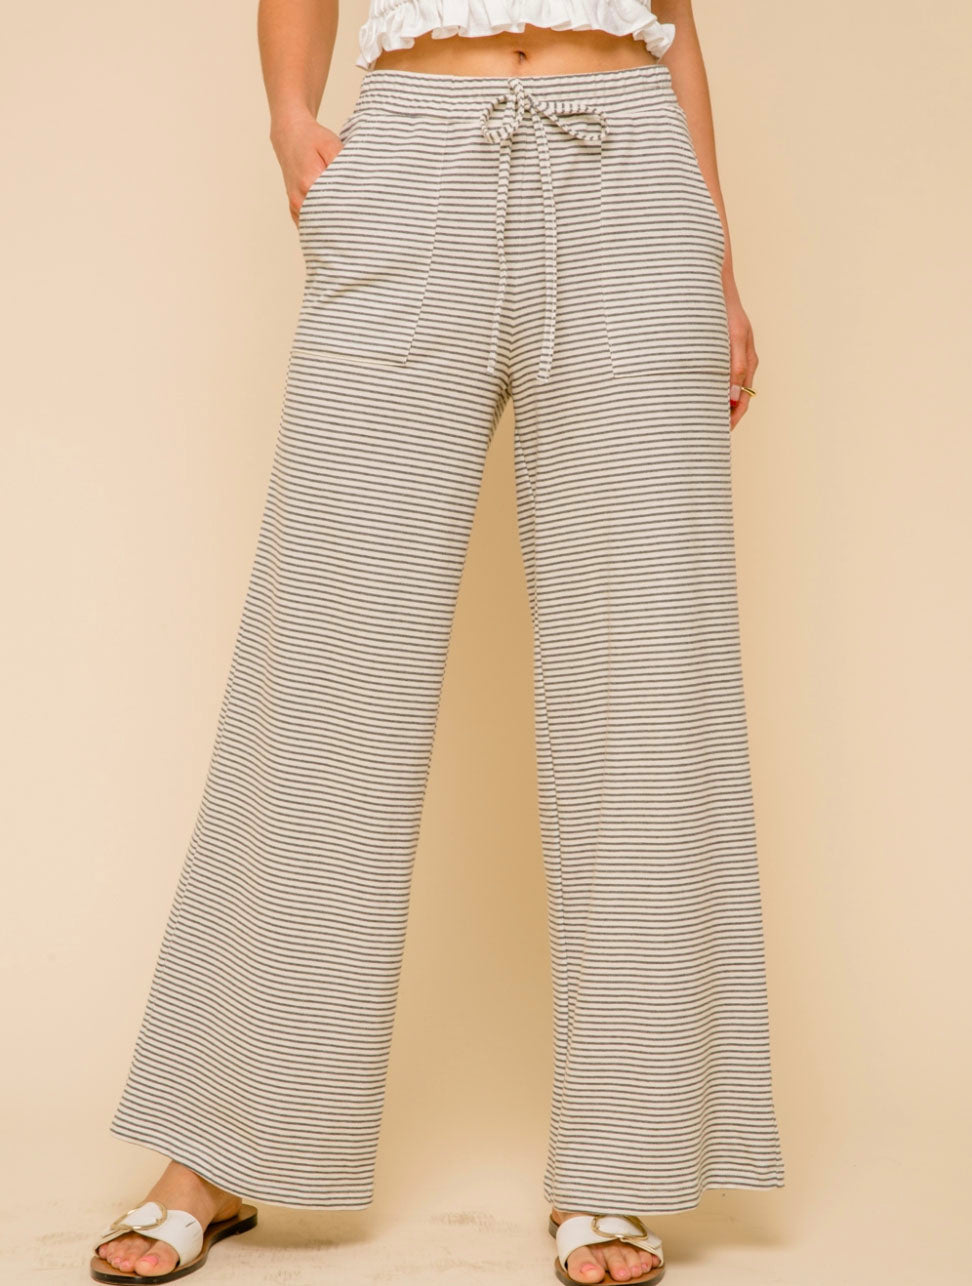 Hem & Thread Wide Leg Trouser in Cream/Charcoal